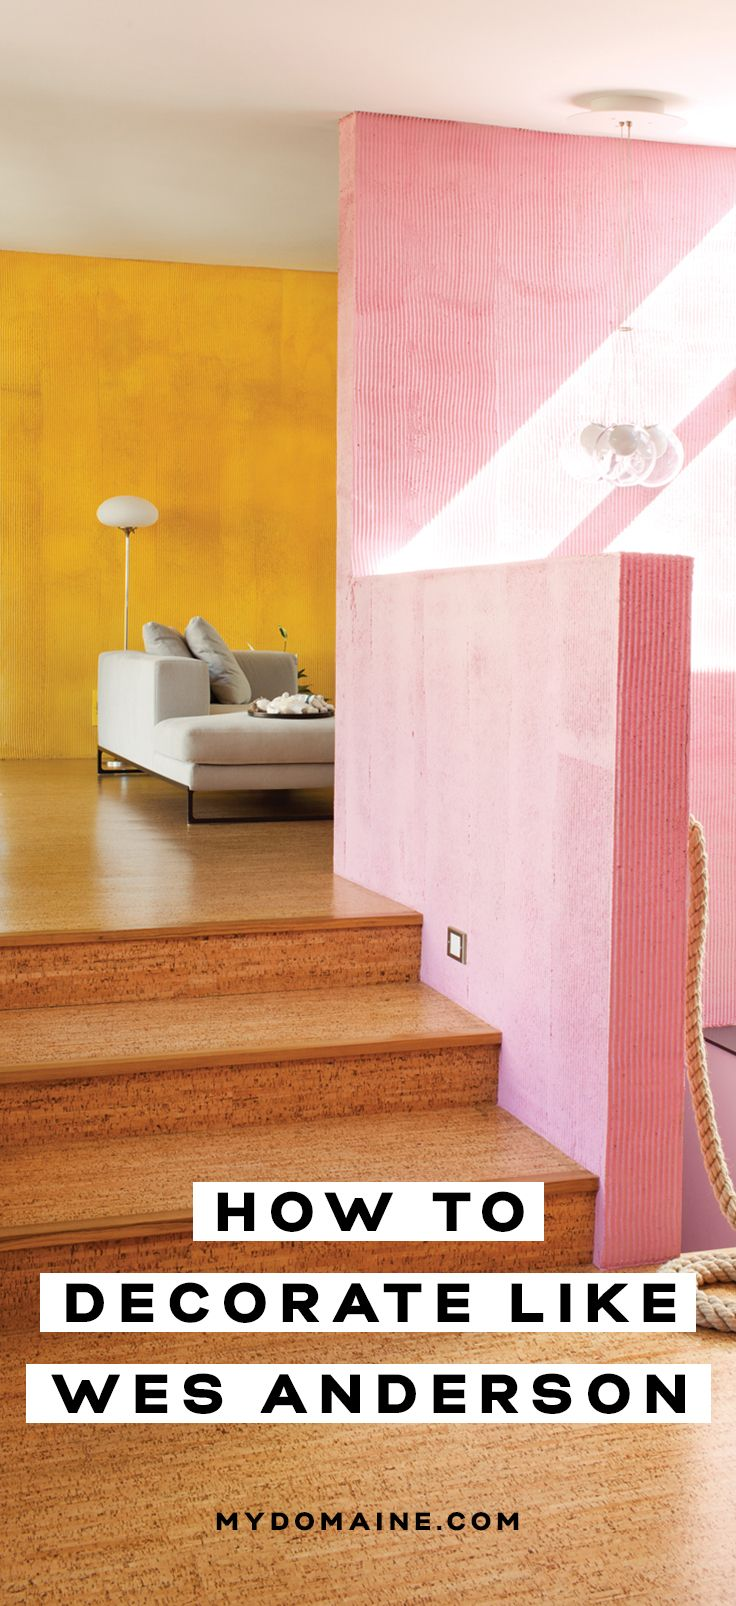 Décor inspiration from iconic film maker, Wes Anderson